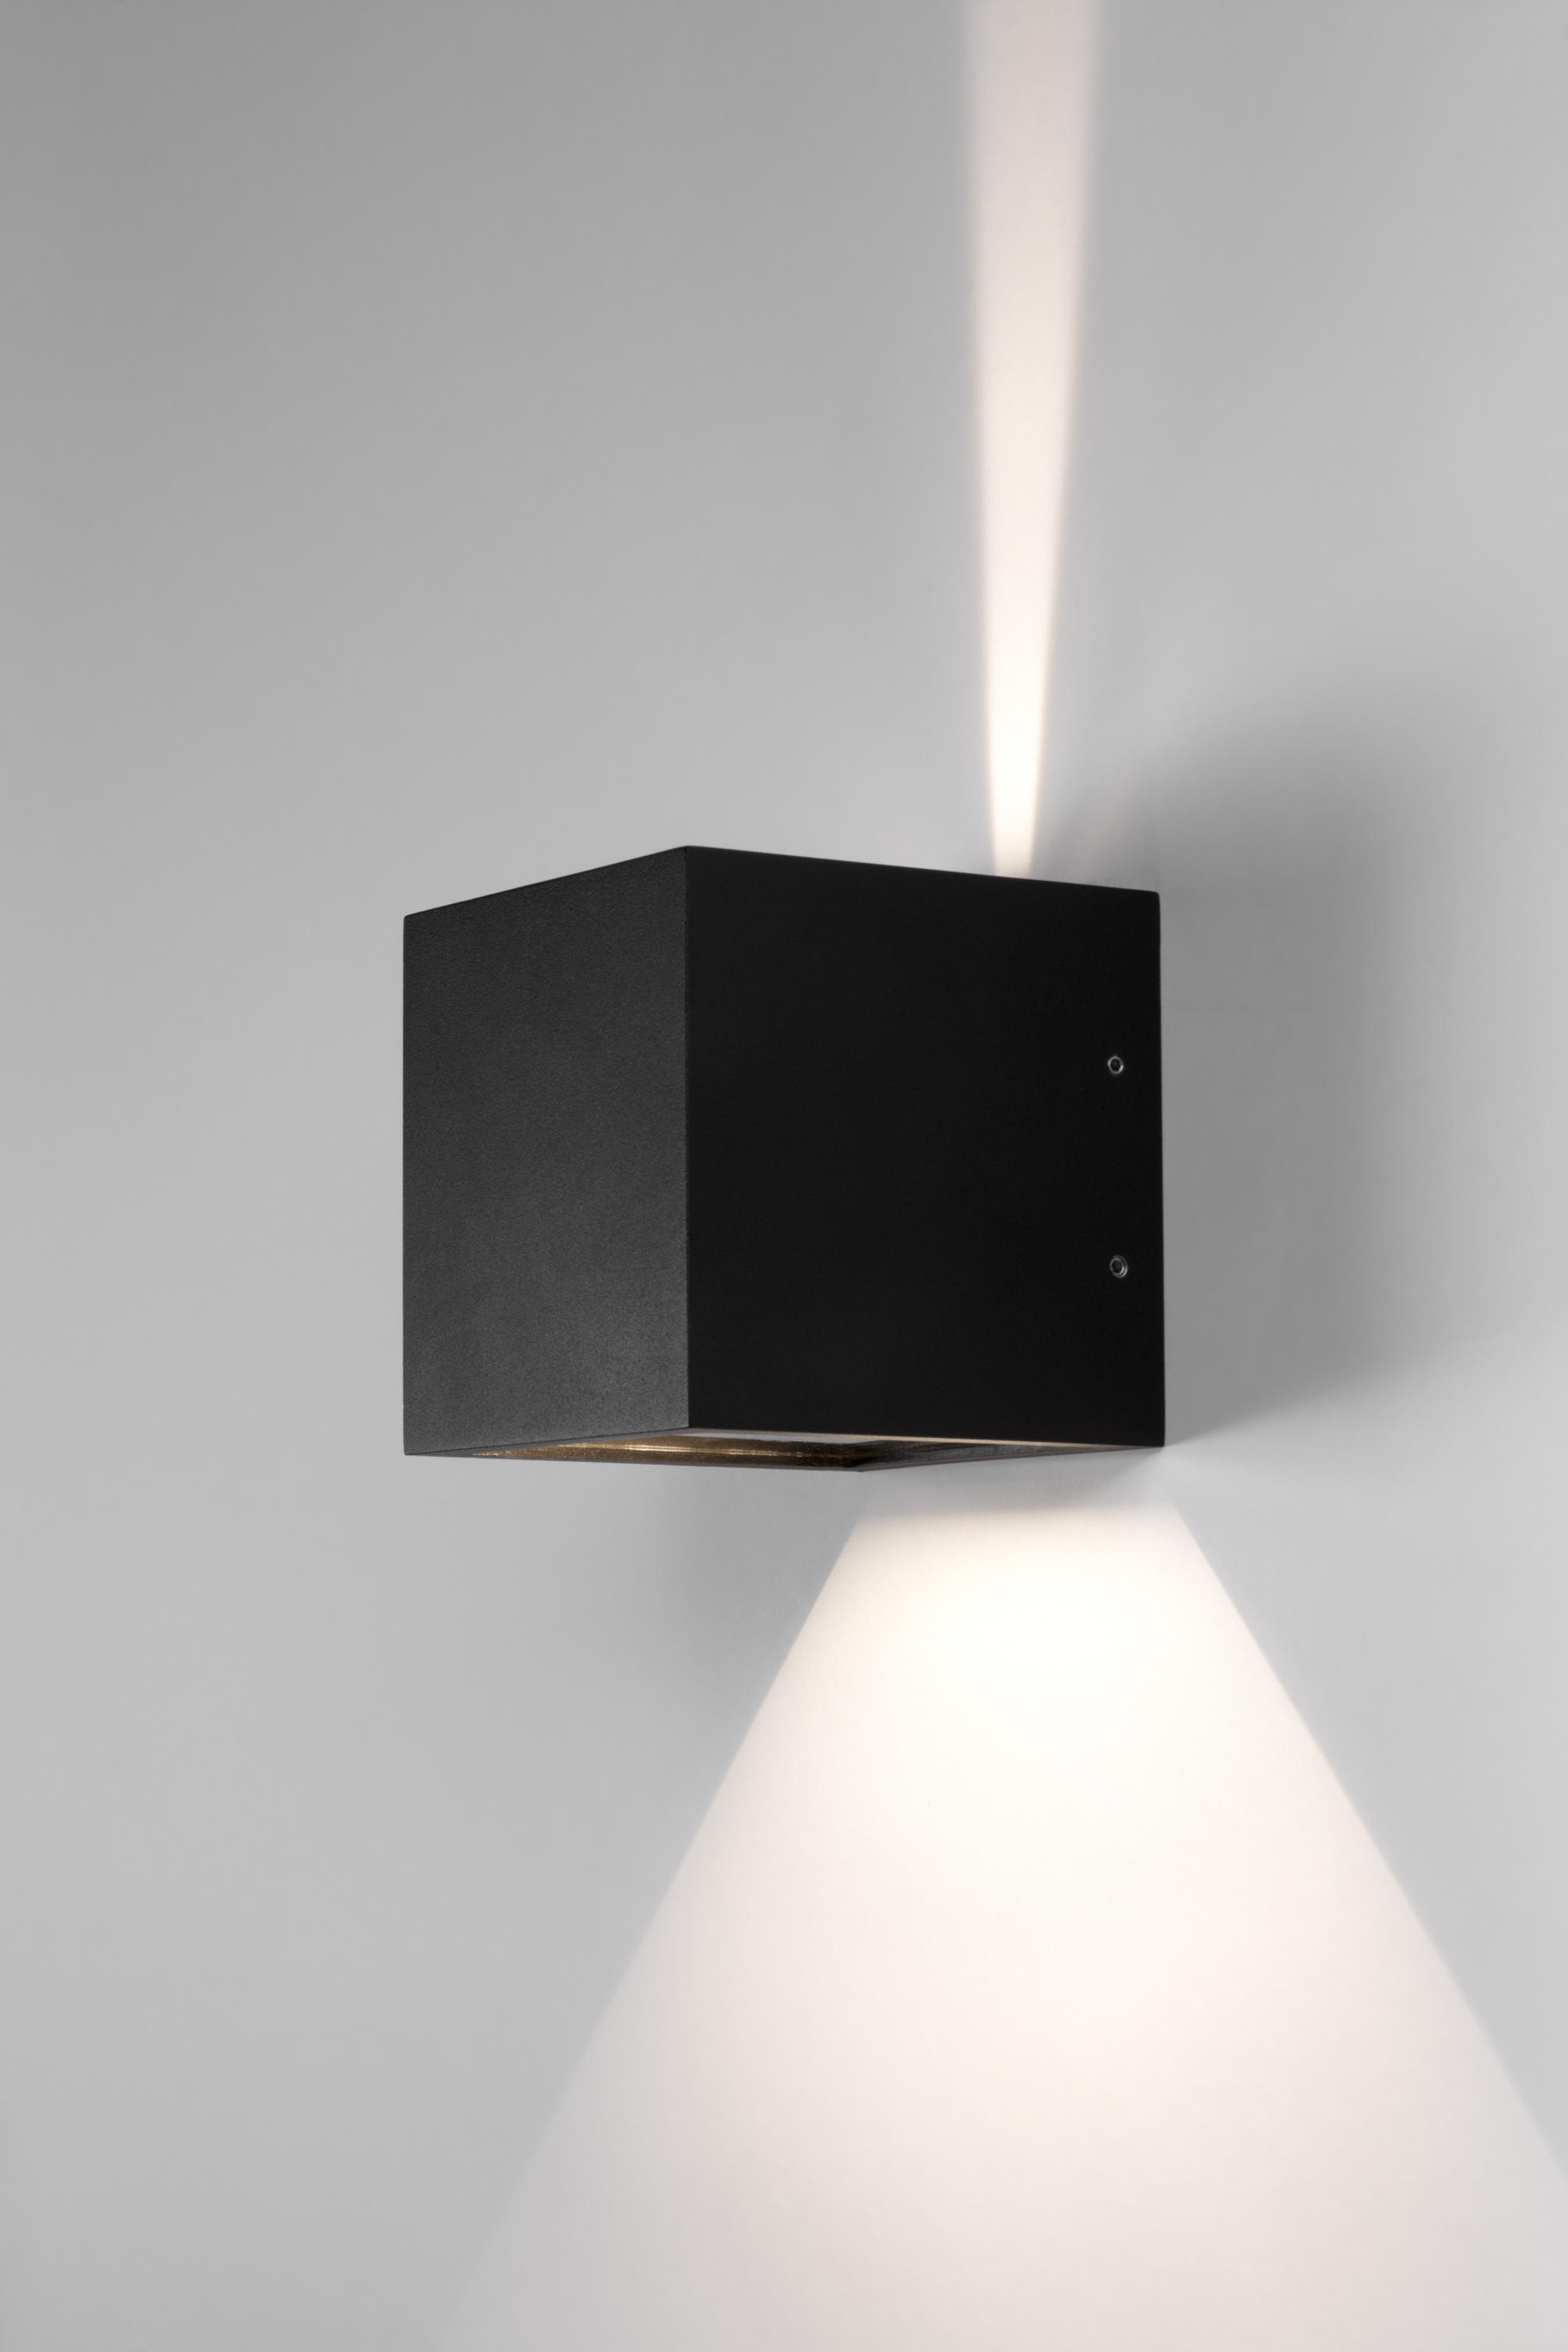 Cube led wall lights from light point architonic cube led by light point wall lights aloadofball Gallery